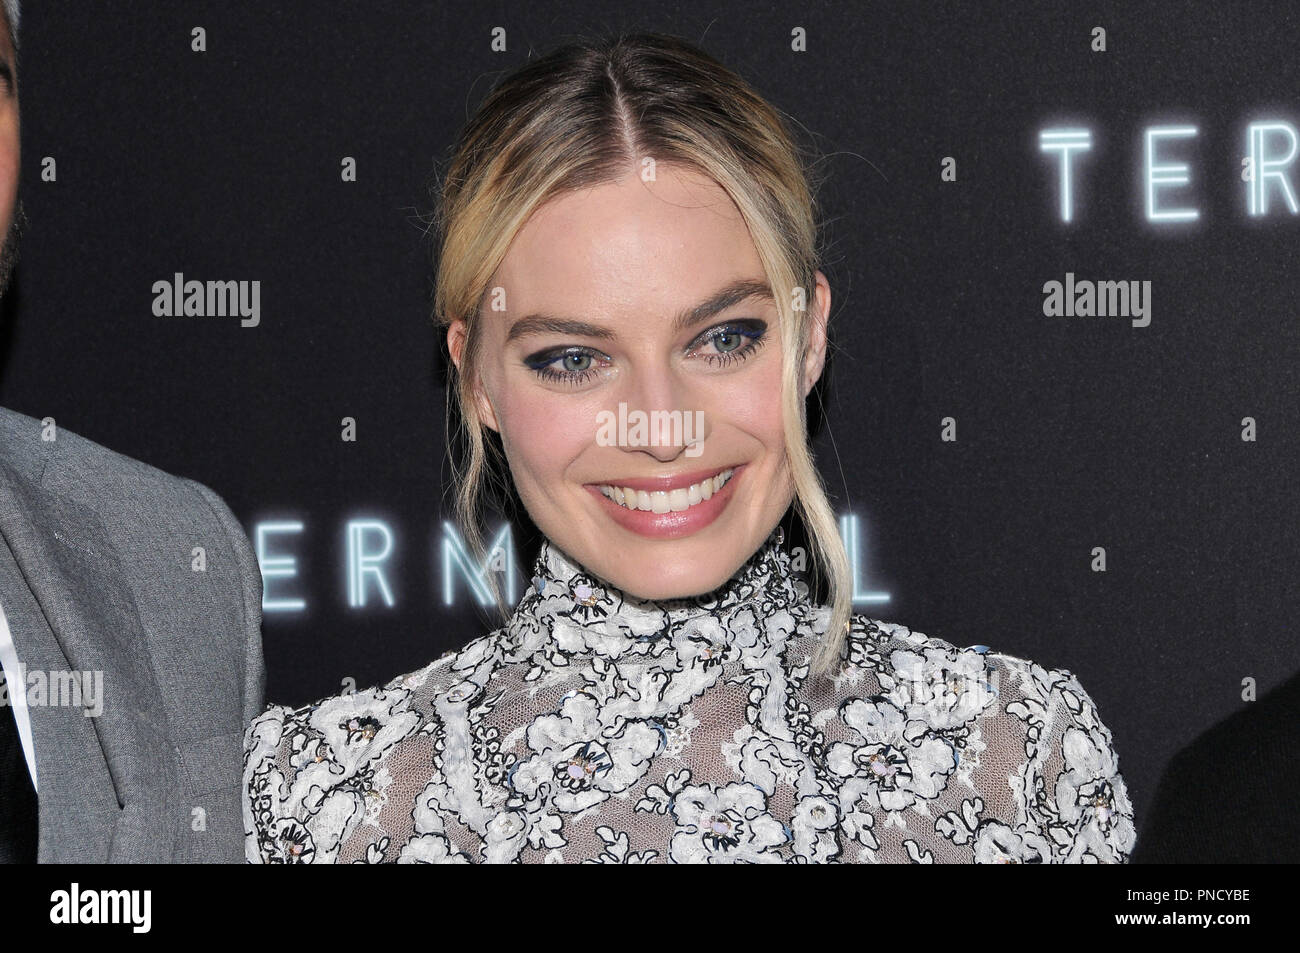 Margot Robbie at the 'Terminal' Premiere held at the ArcLight Hollywood in Los Angeles, CA on Tuesday, May 8, 2018. Photo by PRPP/ PictureLux  File Reference # 33590_015PRPP01  For Editorial Use Only -  All Rights Reserved - Stock Image